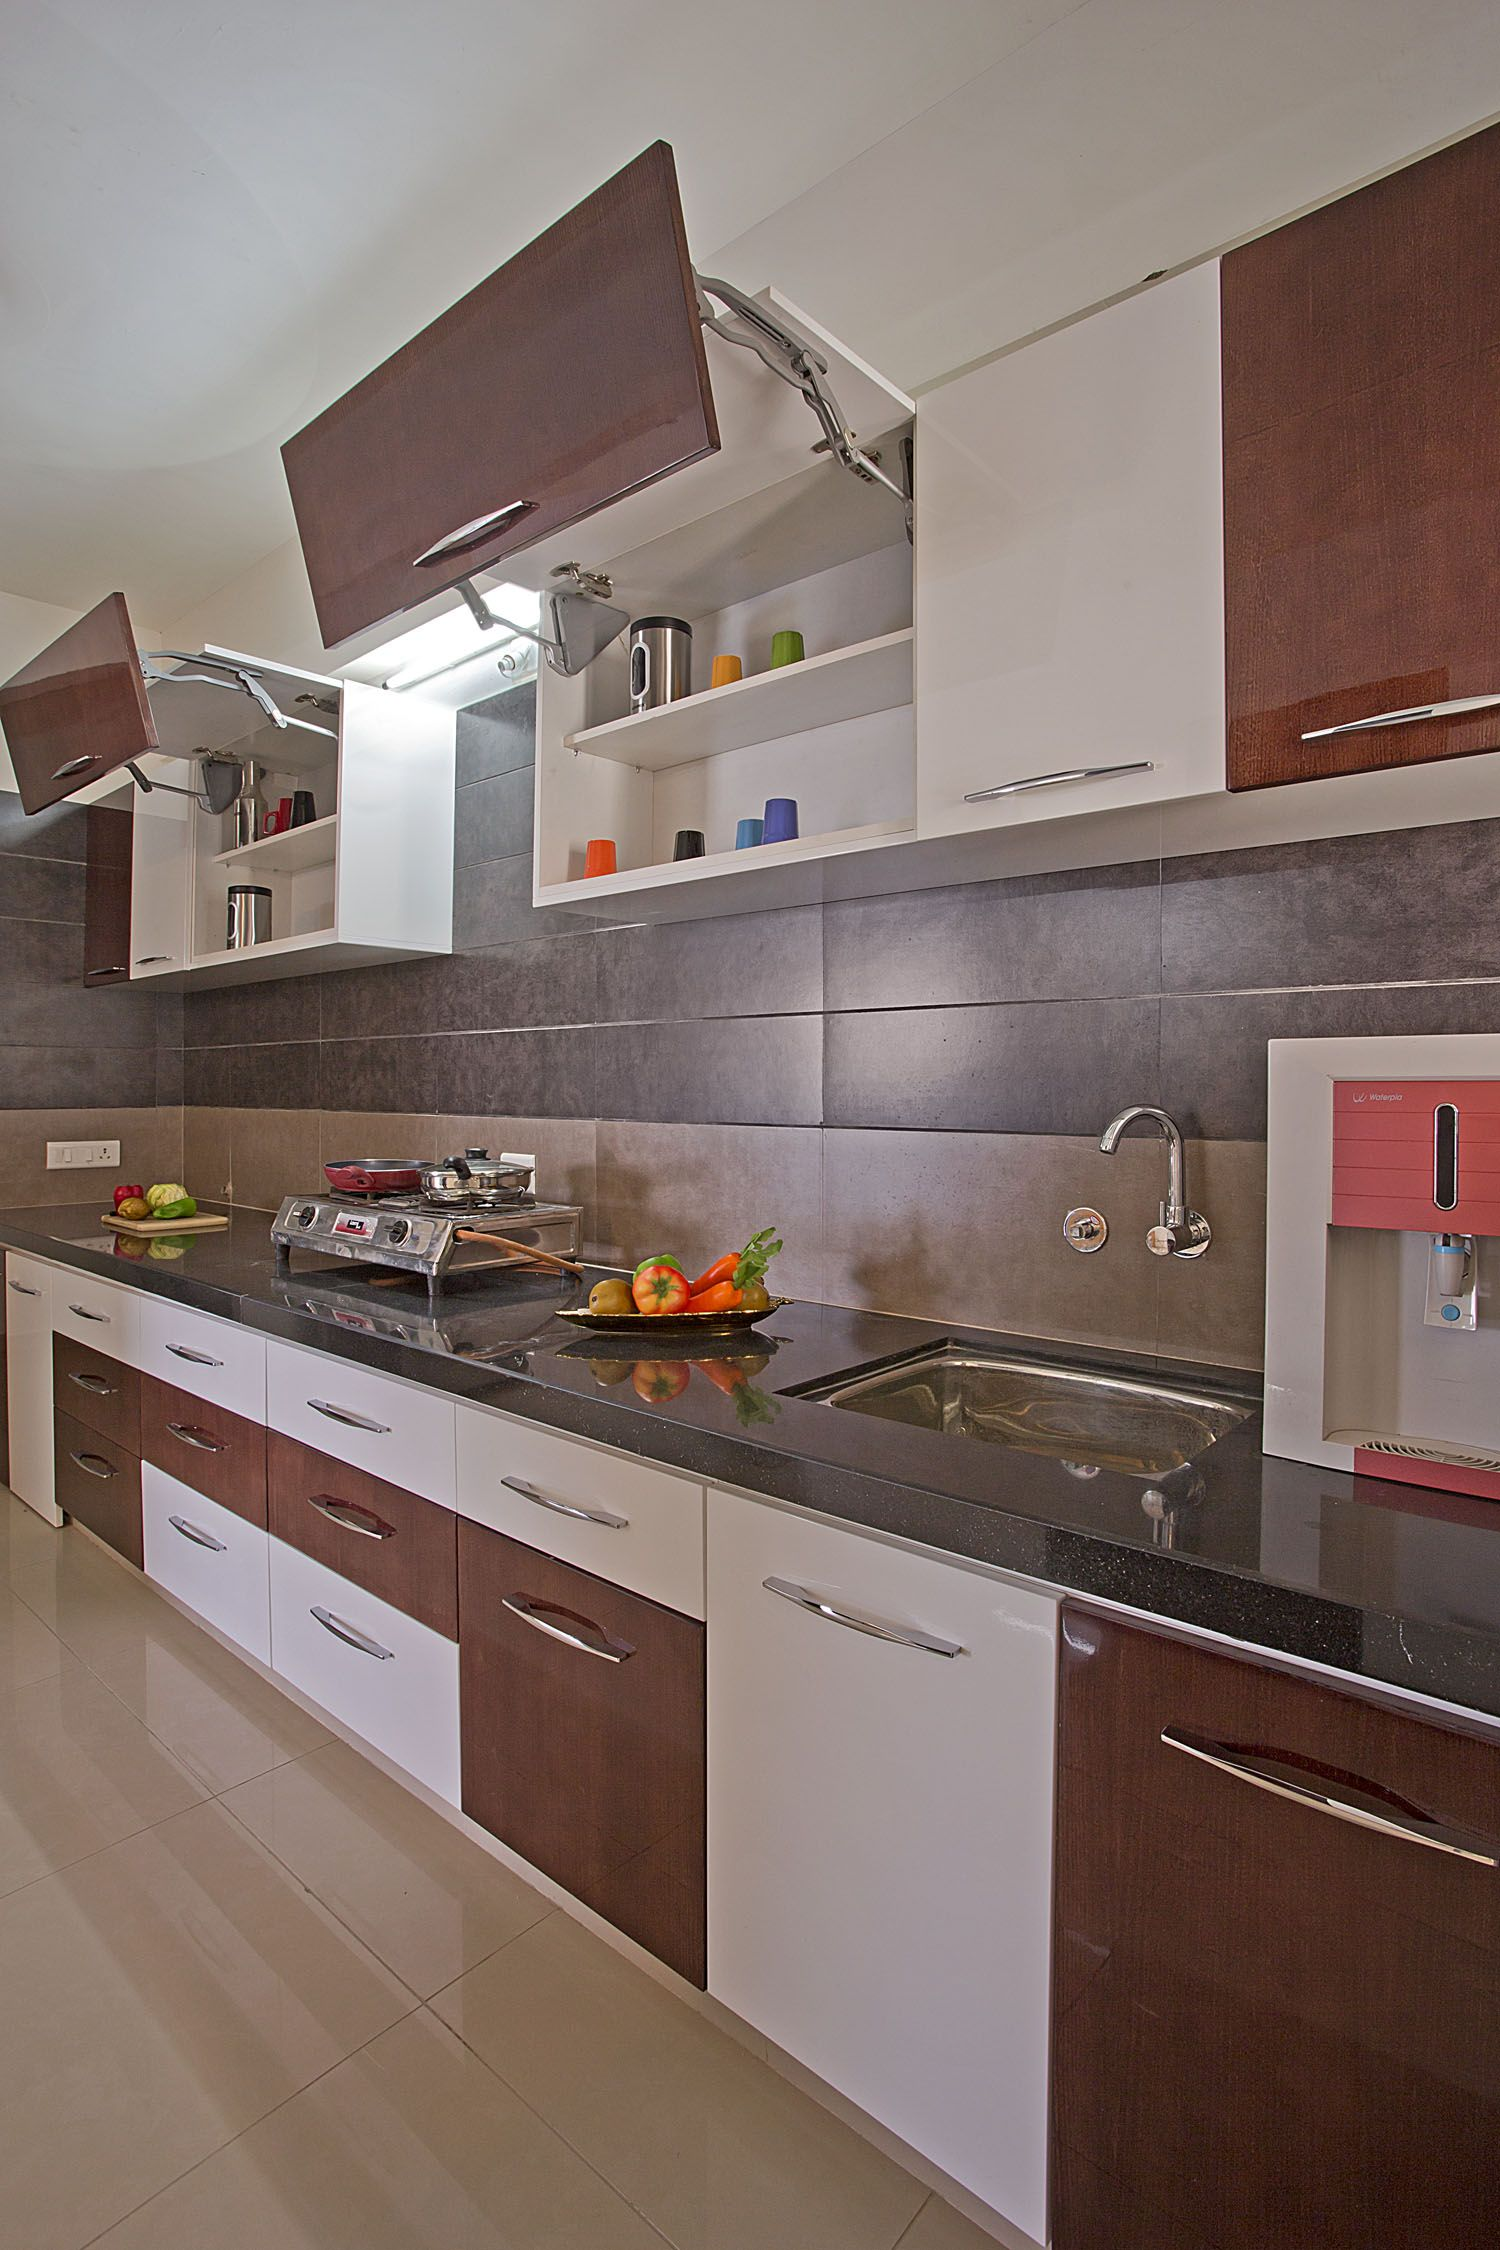 What is an lshaped kitchen beautiful kitchen kitchen design and